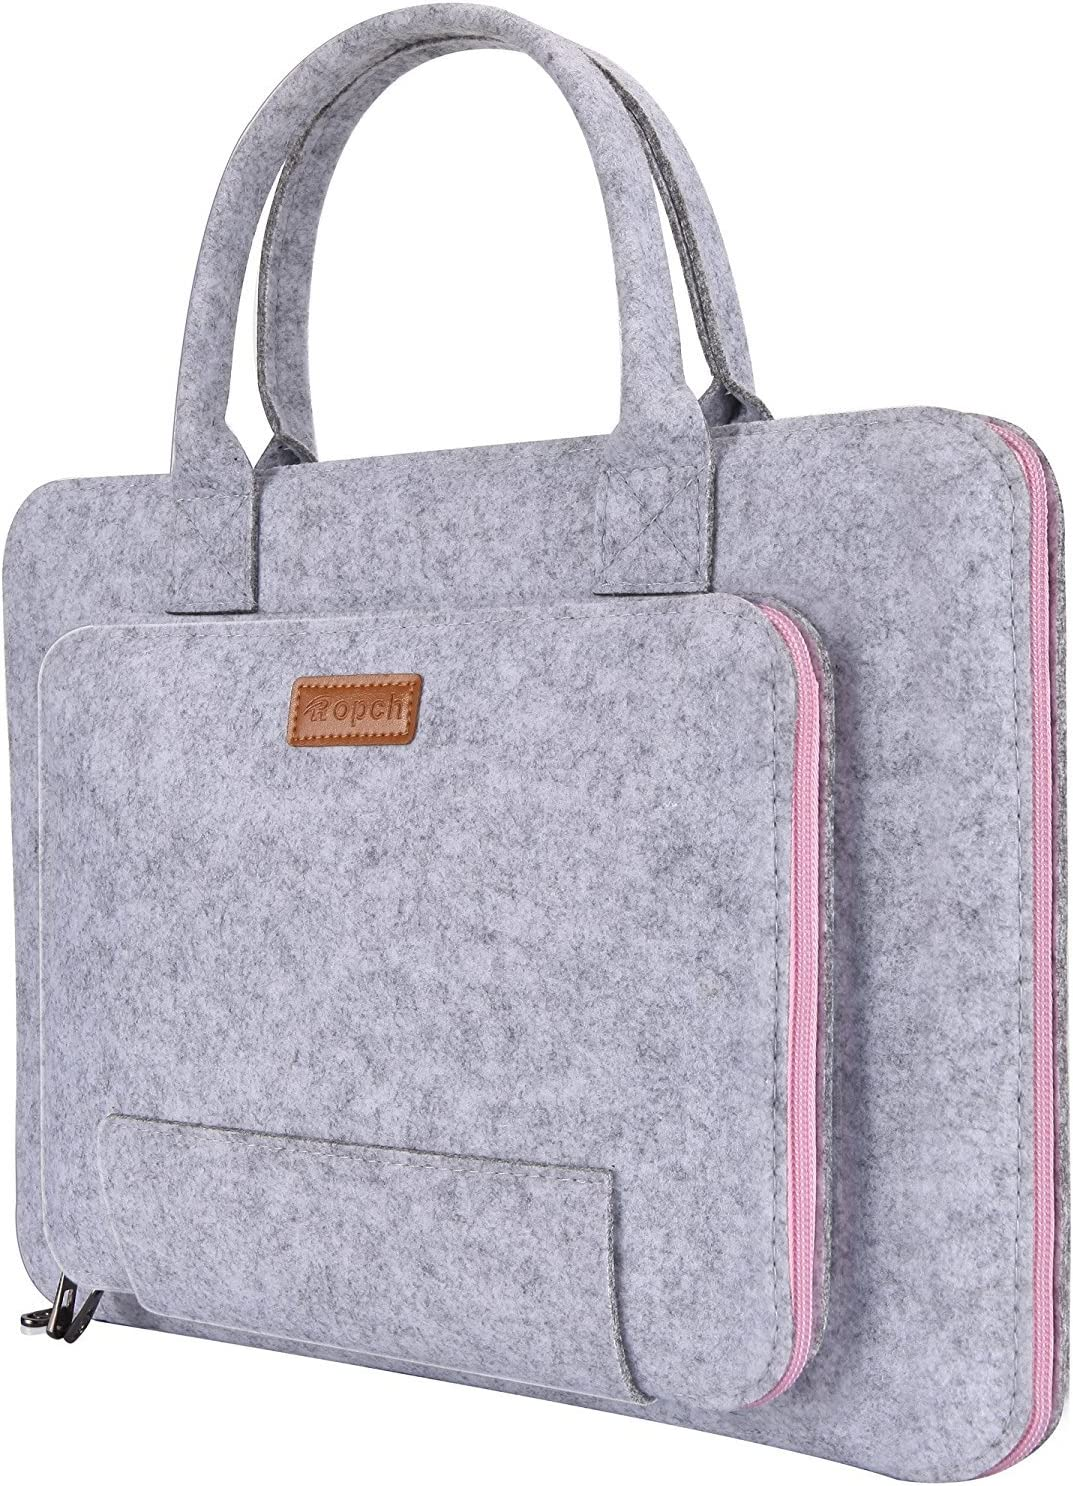 "Ropch 15.6 Inch Laptop Sleeve Felt Notebook Computer Case Bag Pouch with Handle Compatible with 15 15.6"" Acer, ASUS, Dell, HP, Lenovo, Toshiba, Gray & Pink"